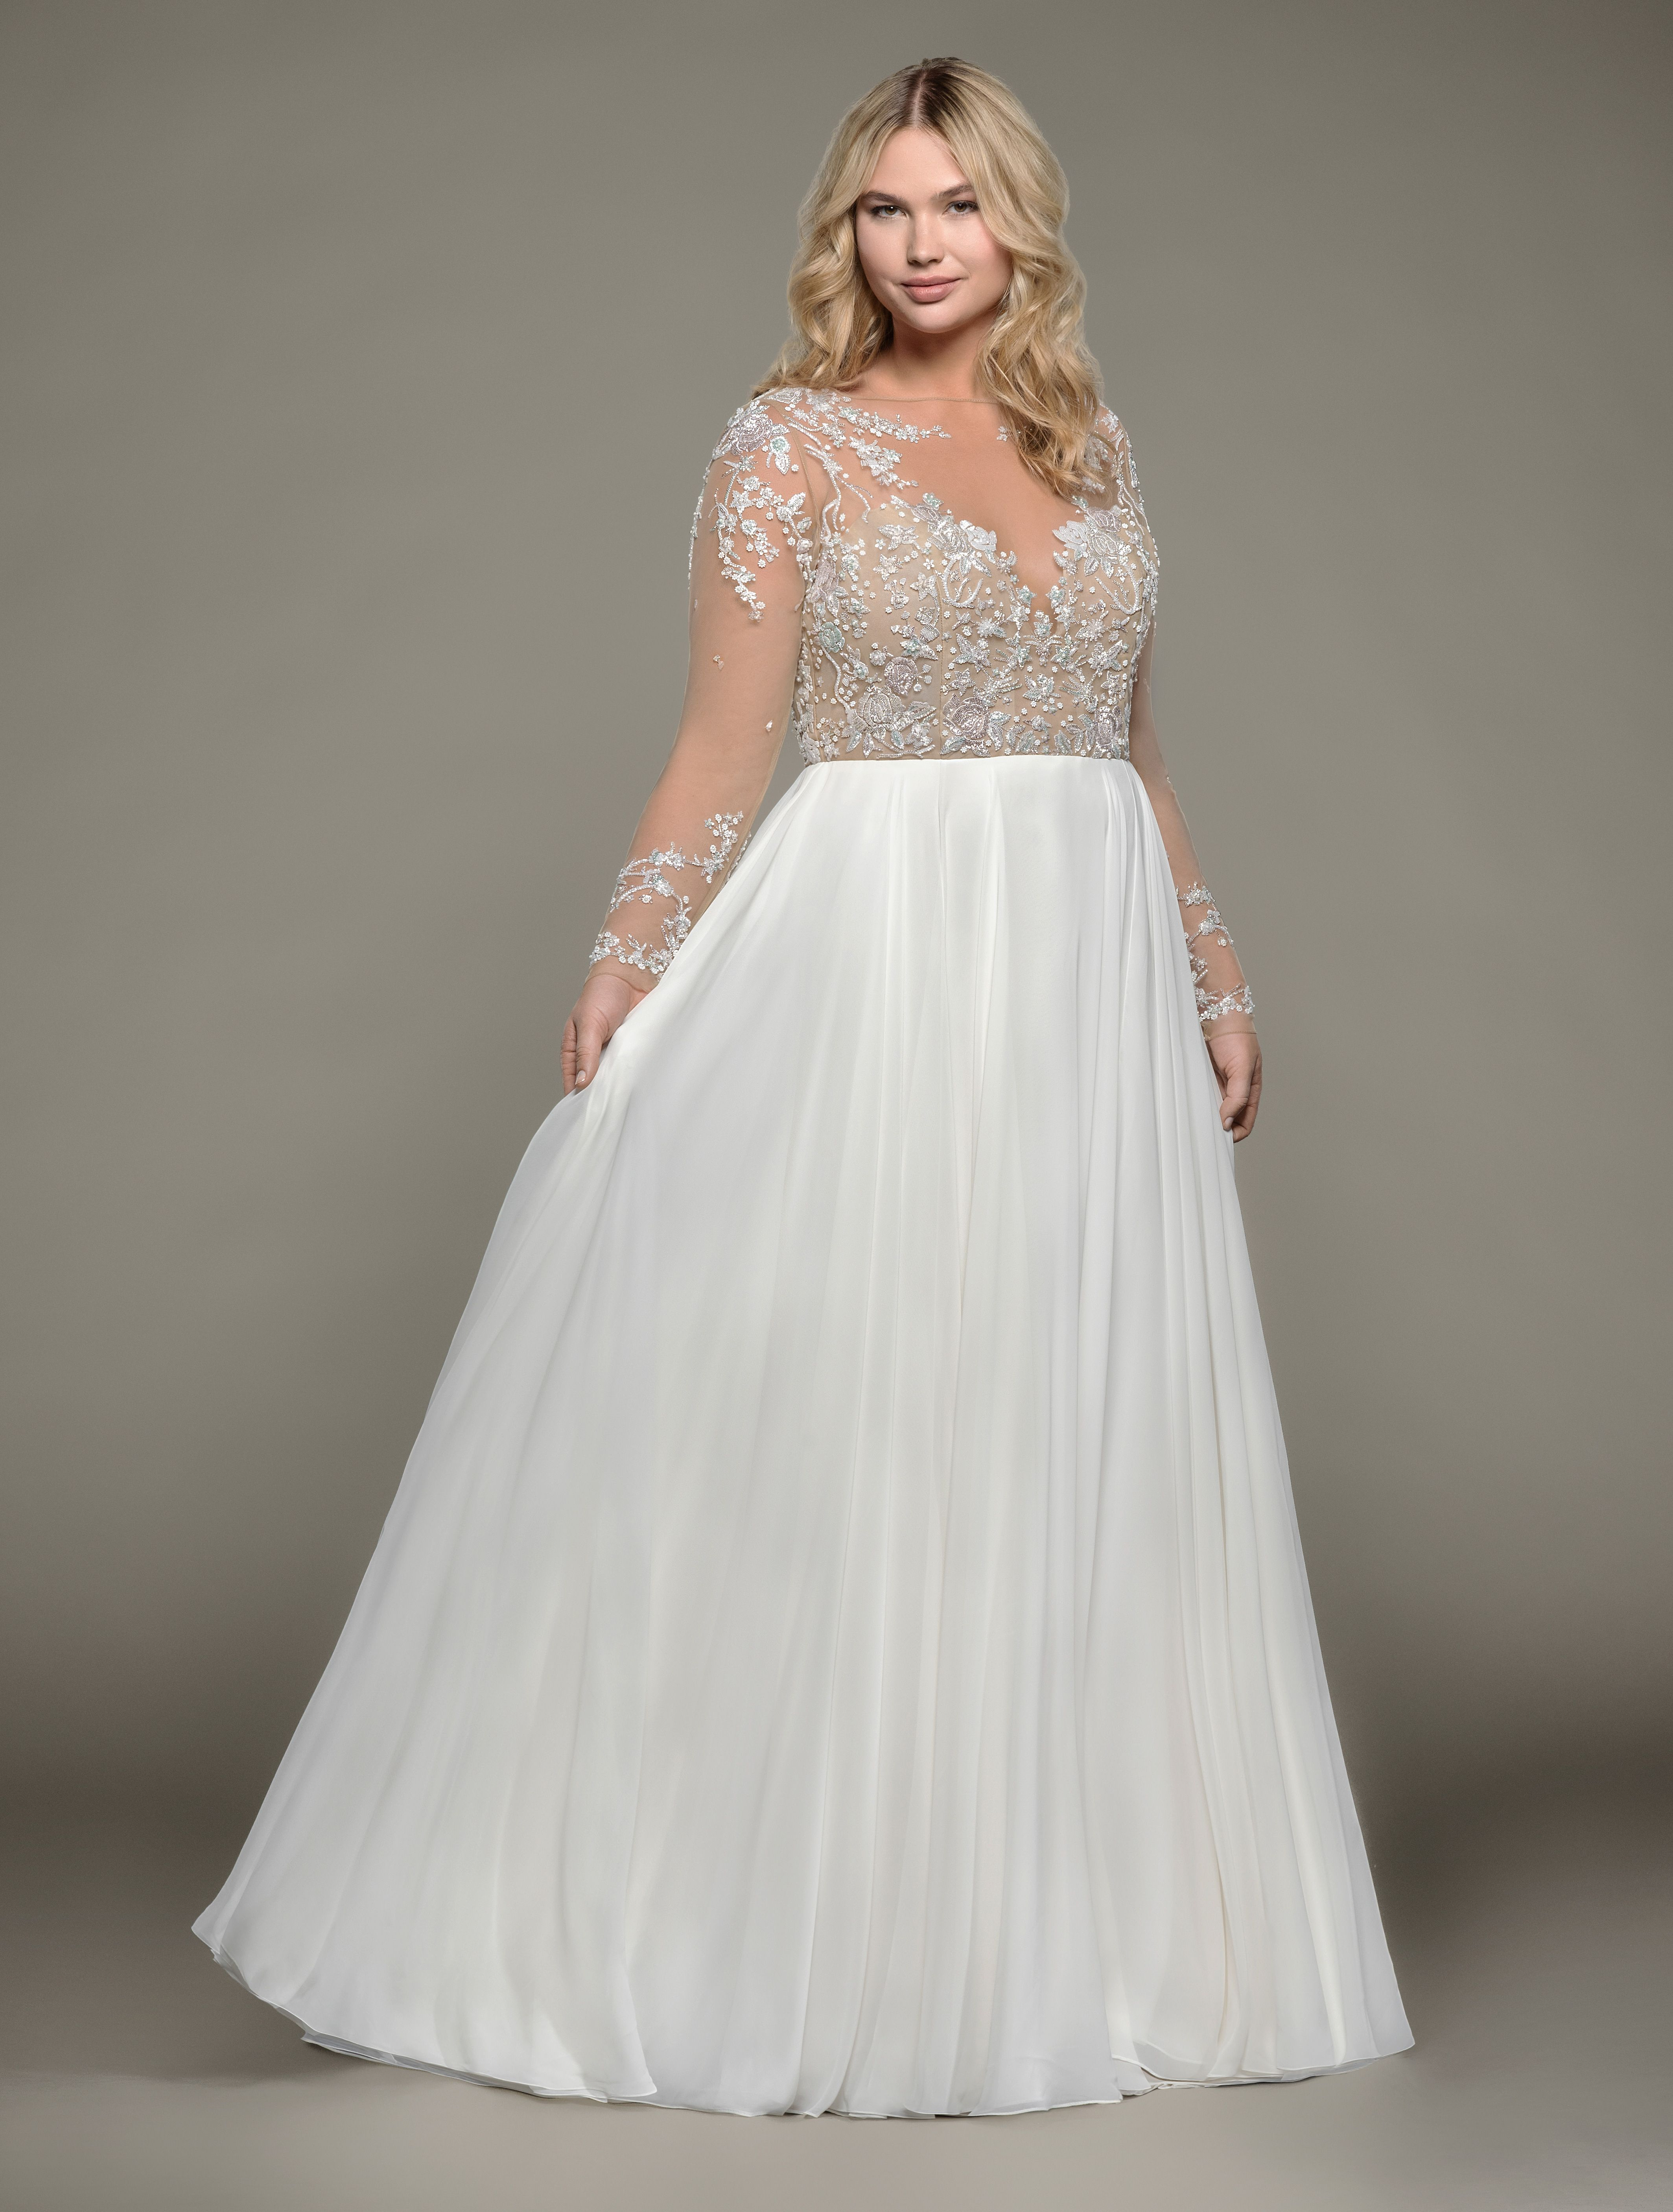 Style 6807s Pascal Hayley Paige Bridal Gown Ivory Chiffon A Line Bridal Gown Long Sle Wedding Dresses Size 14 Modern Wedding Dress Wedding Dresses Plus Size [ 5623 x 4254 Pixel ]